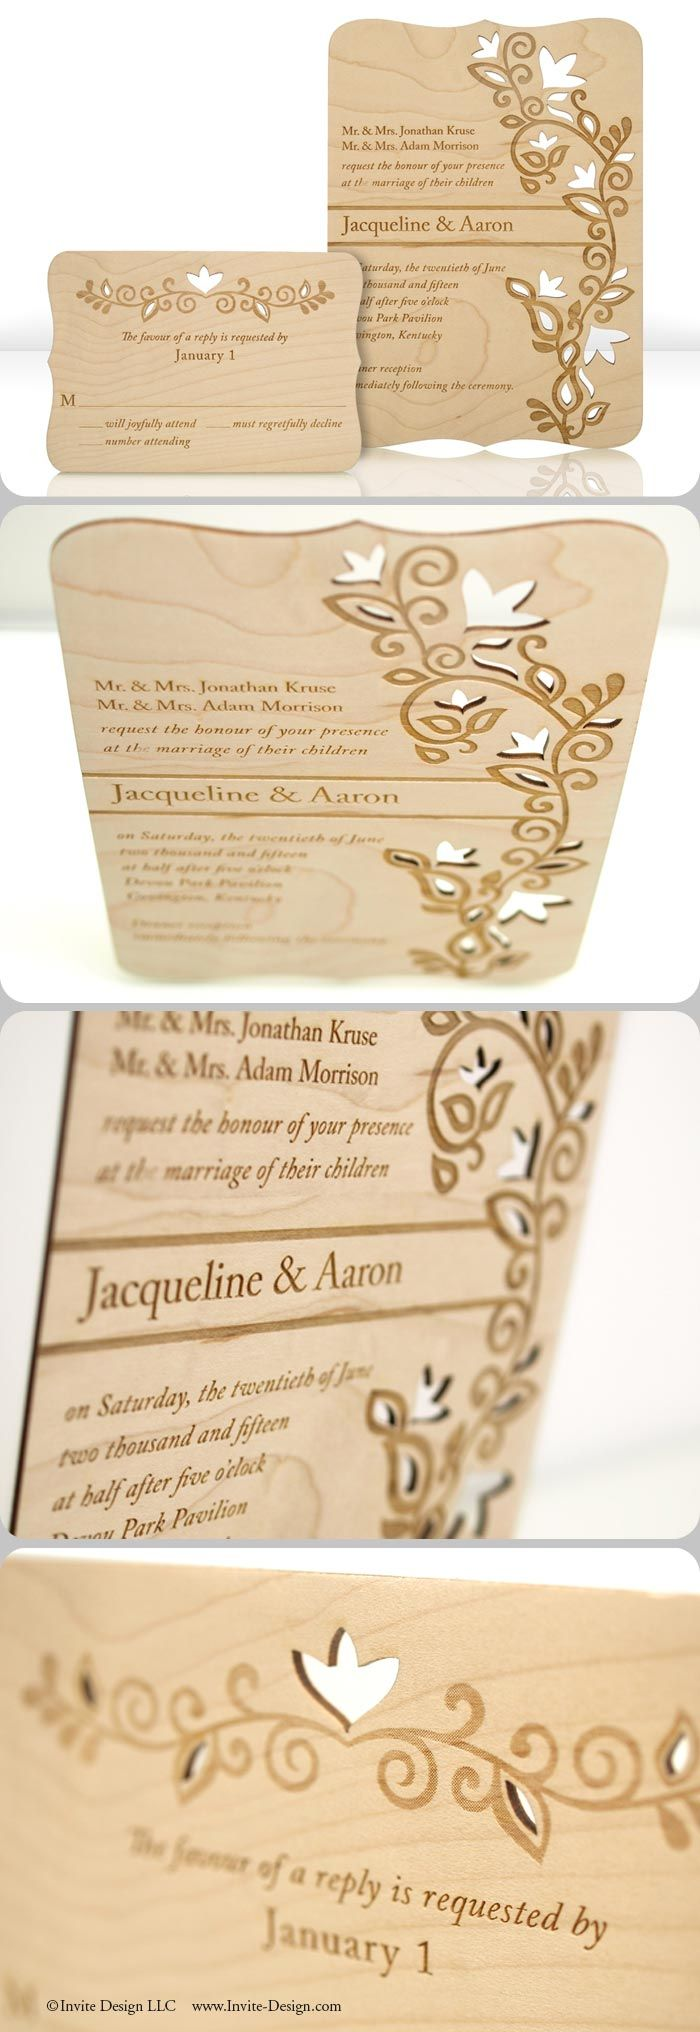 """Laser cut wood wedding invitations. These Indian wedding invitations and accompanying response cards feature stunning engraved detail. Laser cut into 1/16"""" wood planks. http://www.invite-design.com/#!product/prd12/4250339495/perennial-invitation-with-rsvp"""